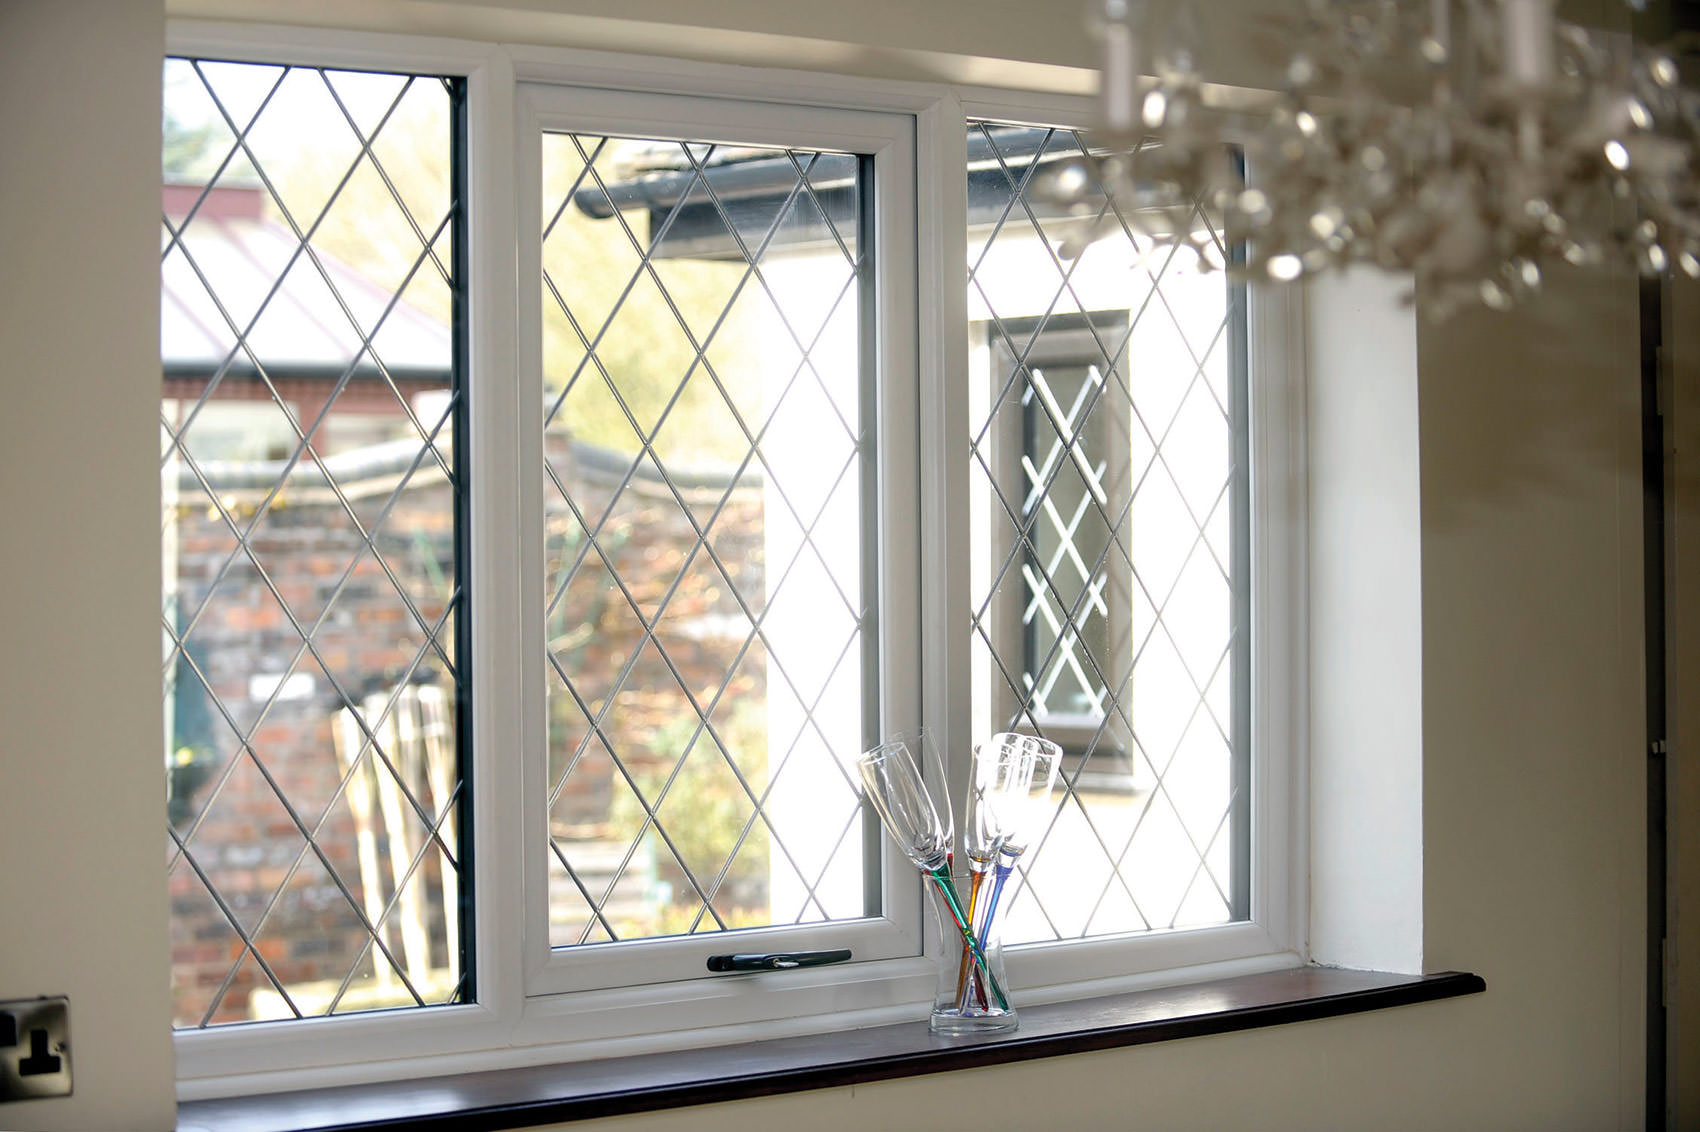 Upvc tilt and turn windows bradford leeds upvc windows for Upvc french doors leeds